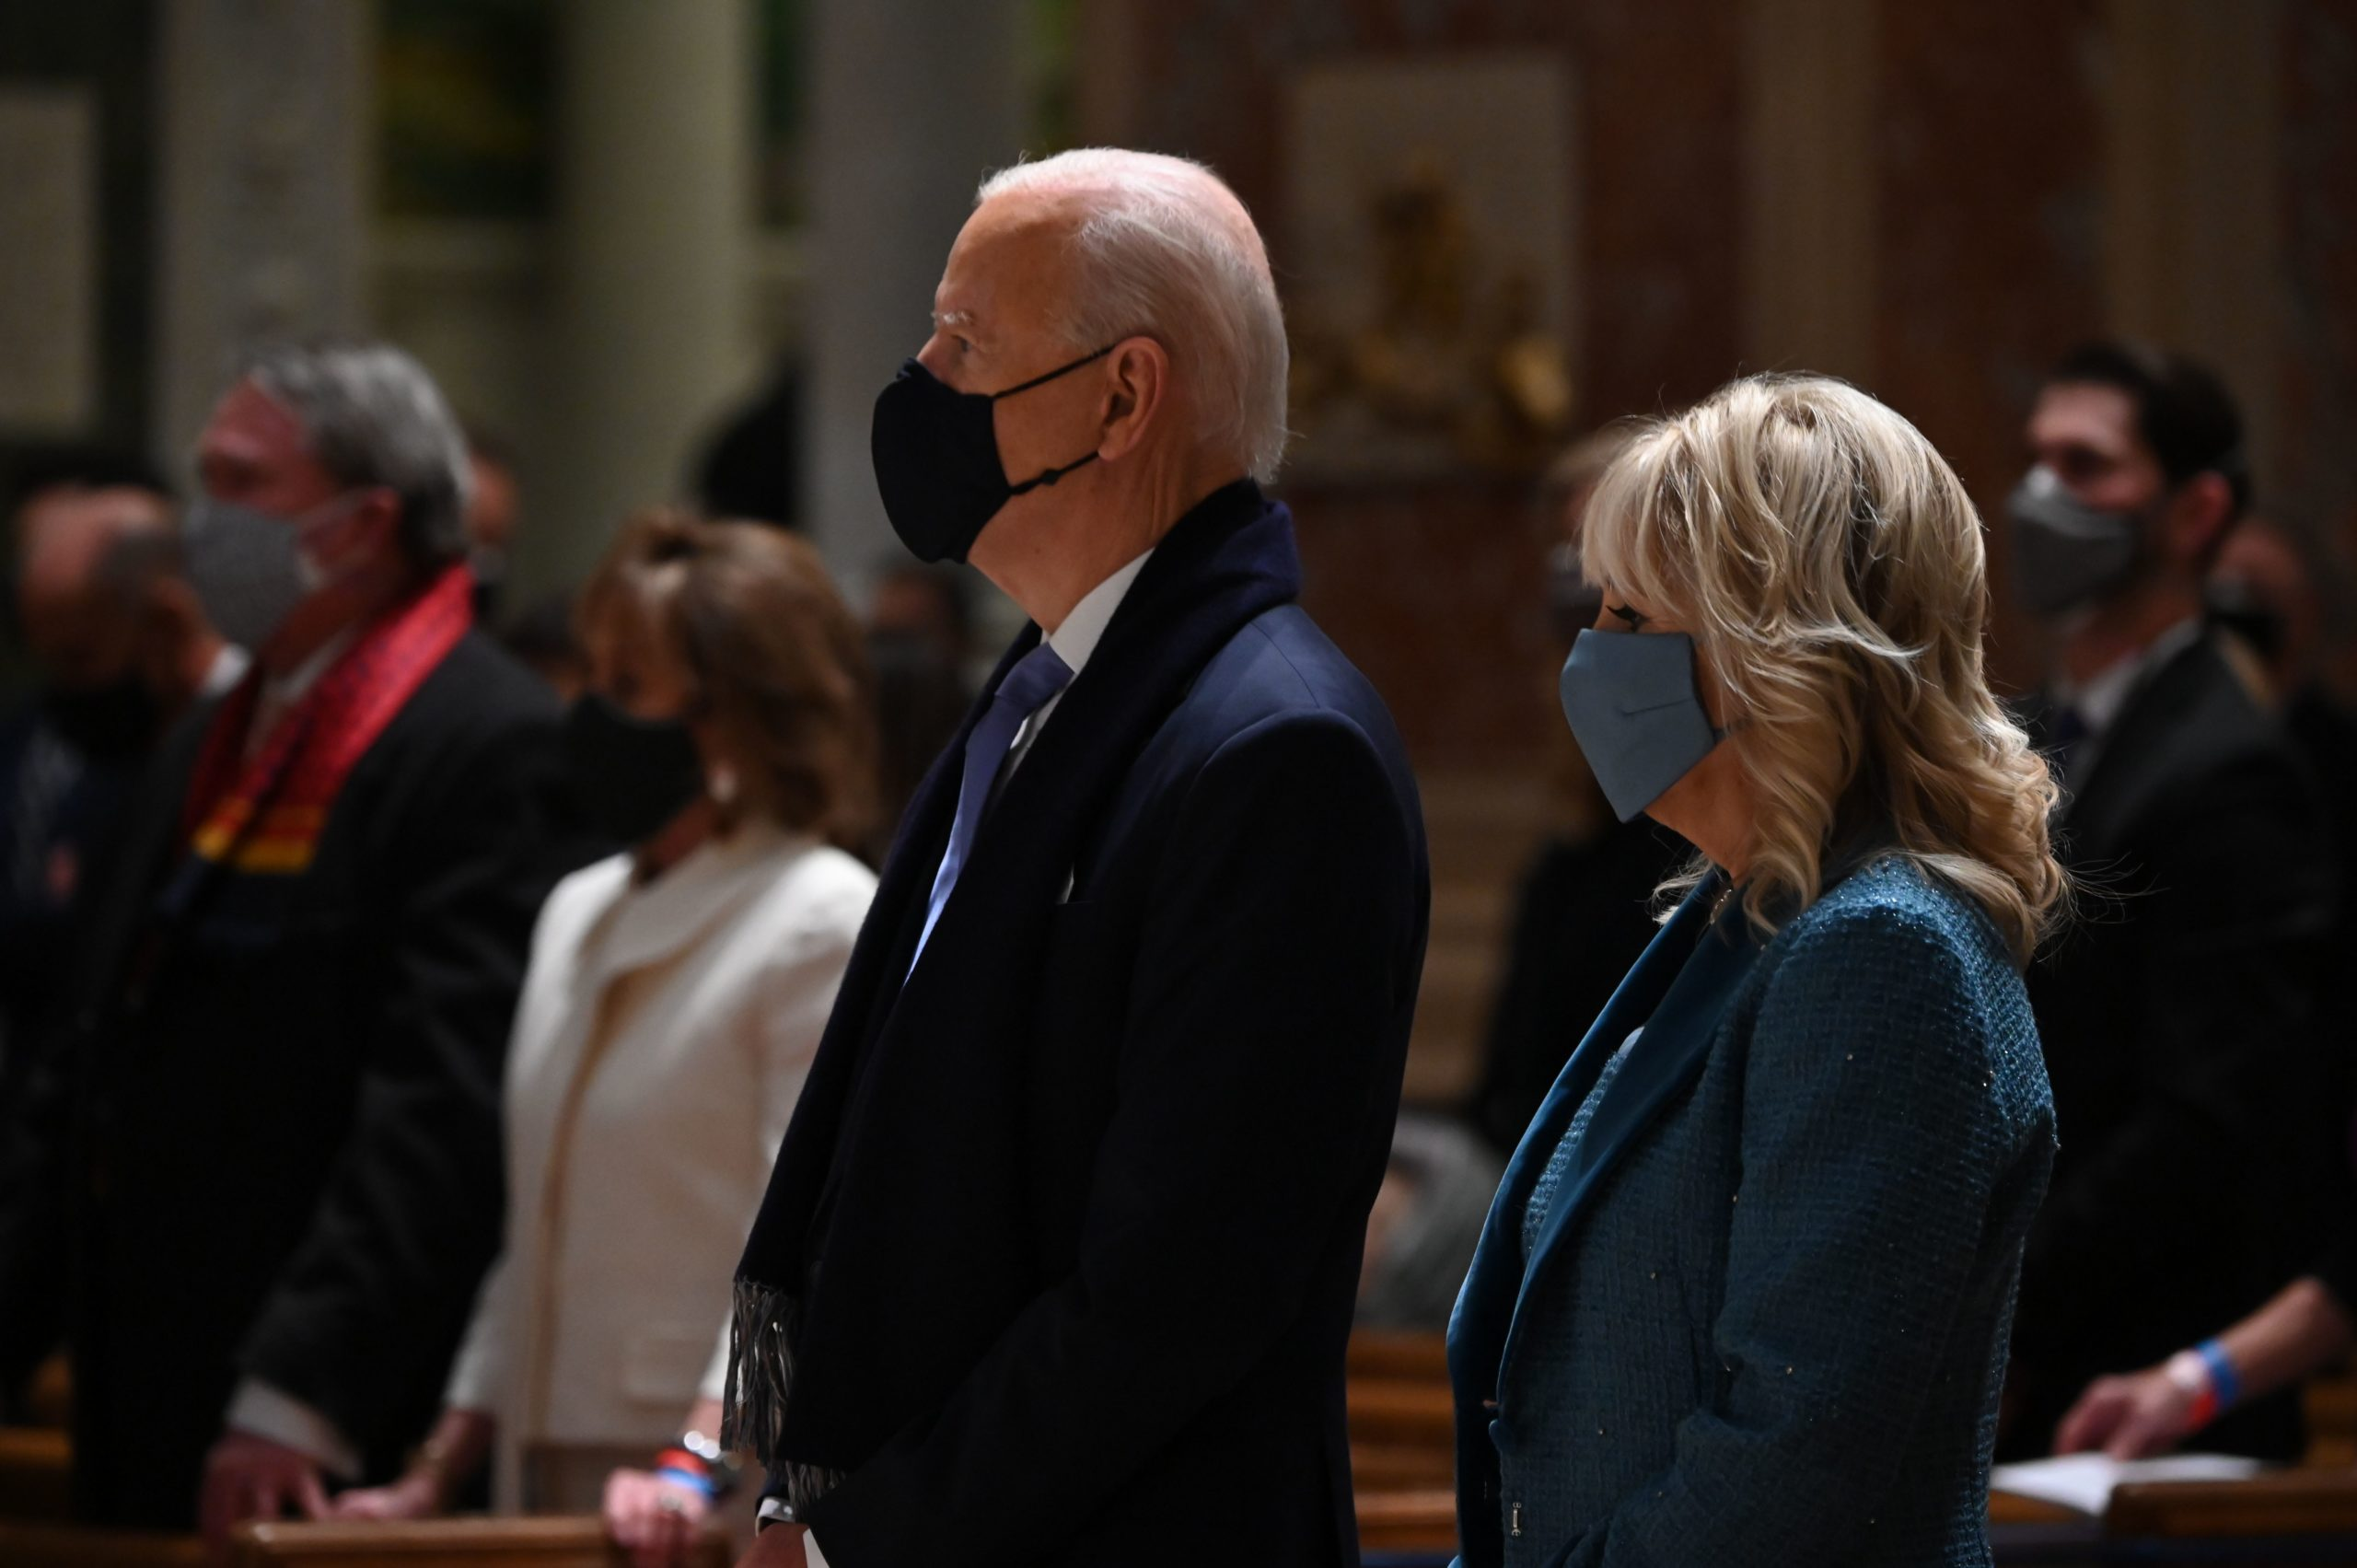 US President-elect Joe Biden (C) and incoming First Lady Jill Biden attend Mass at the Cathedral of St. Matthew the Apostle in Washington, DC, on January 20, 2021. - Biden is to be sworn in as the 46th US President at the US Capitol. (JIM WATSON/AFP via Getty Images)